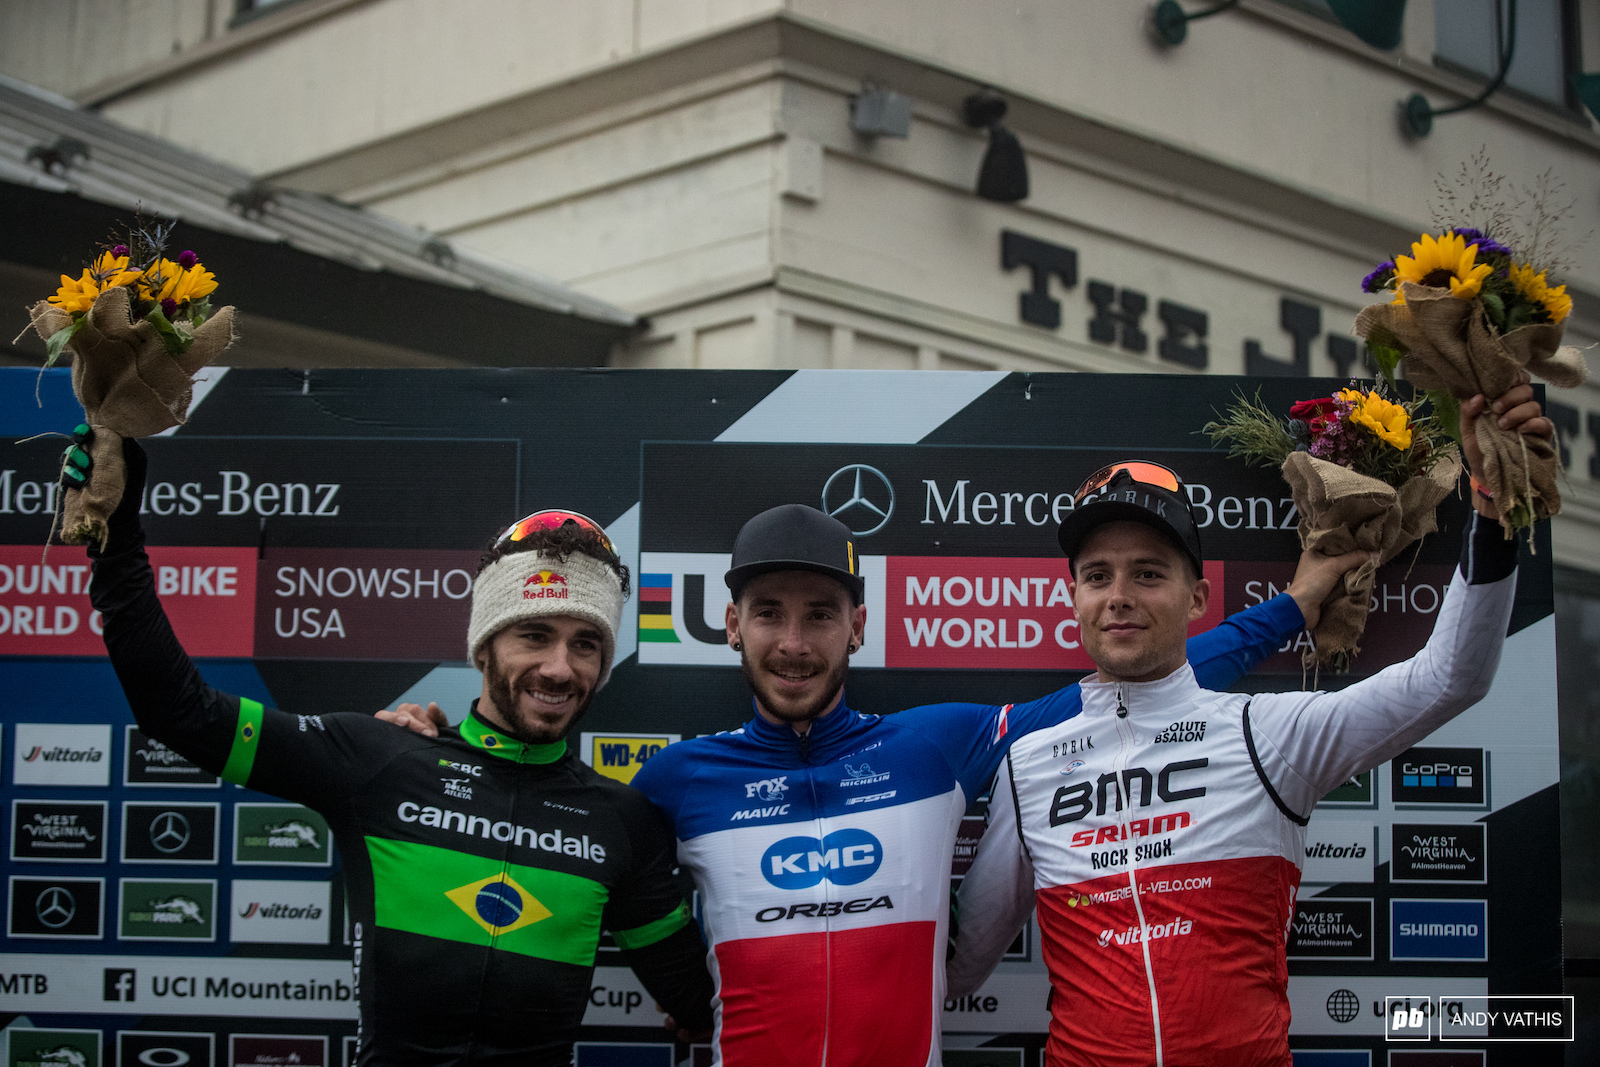 Your top 3 men 1st Victor Koretzky 2nd Henrique Avancini and 3rd Filipp0 Colombo